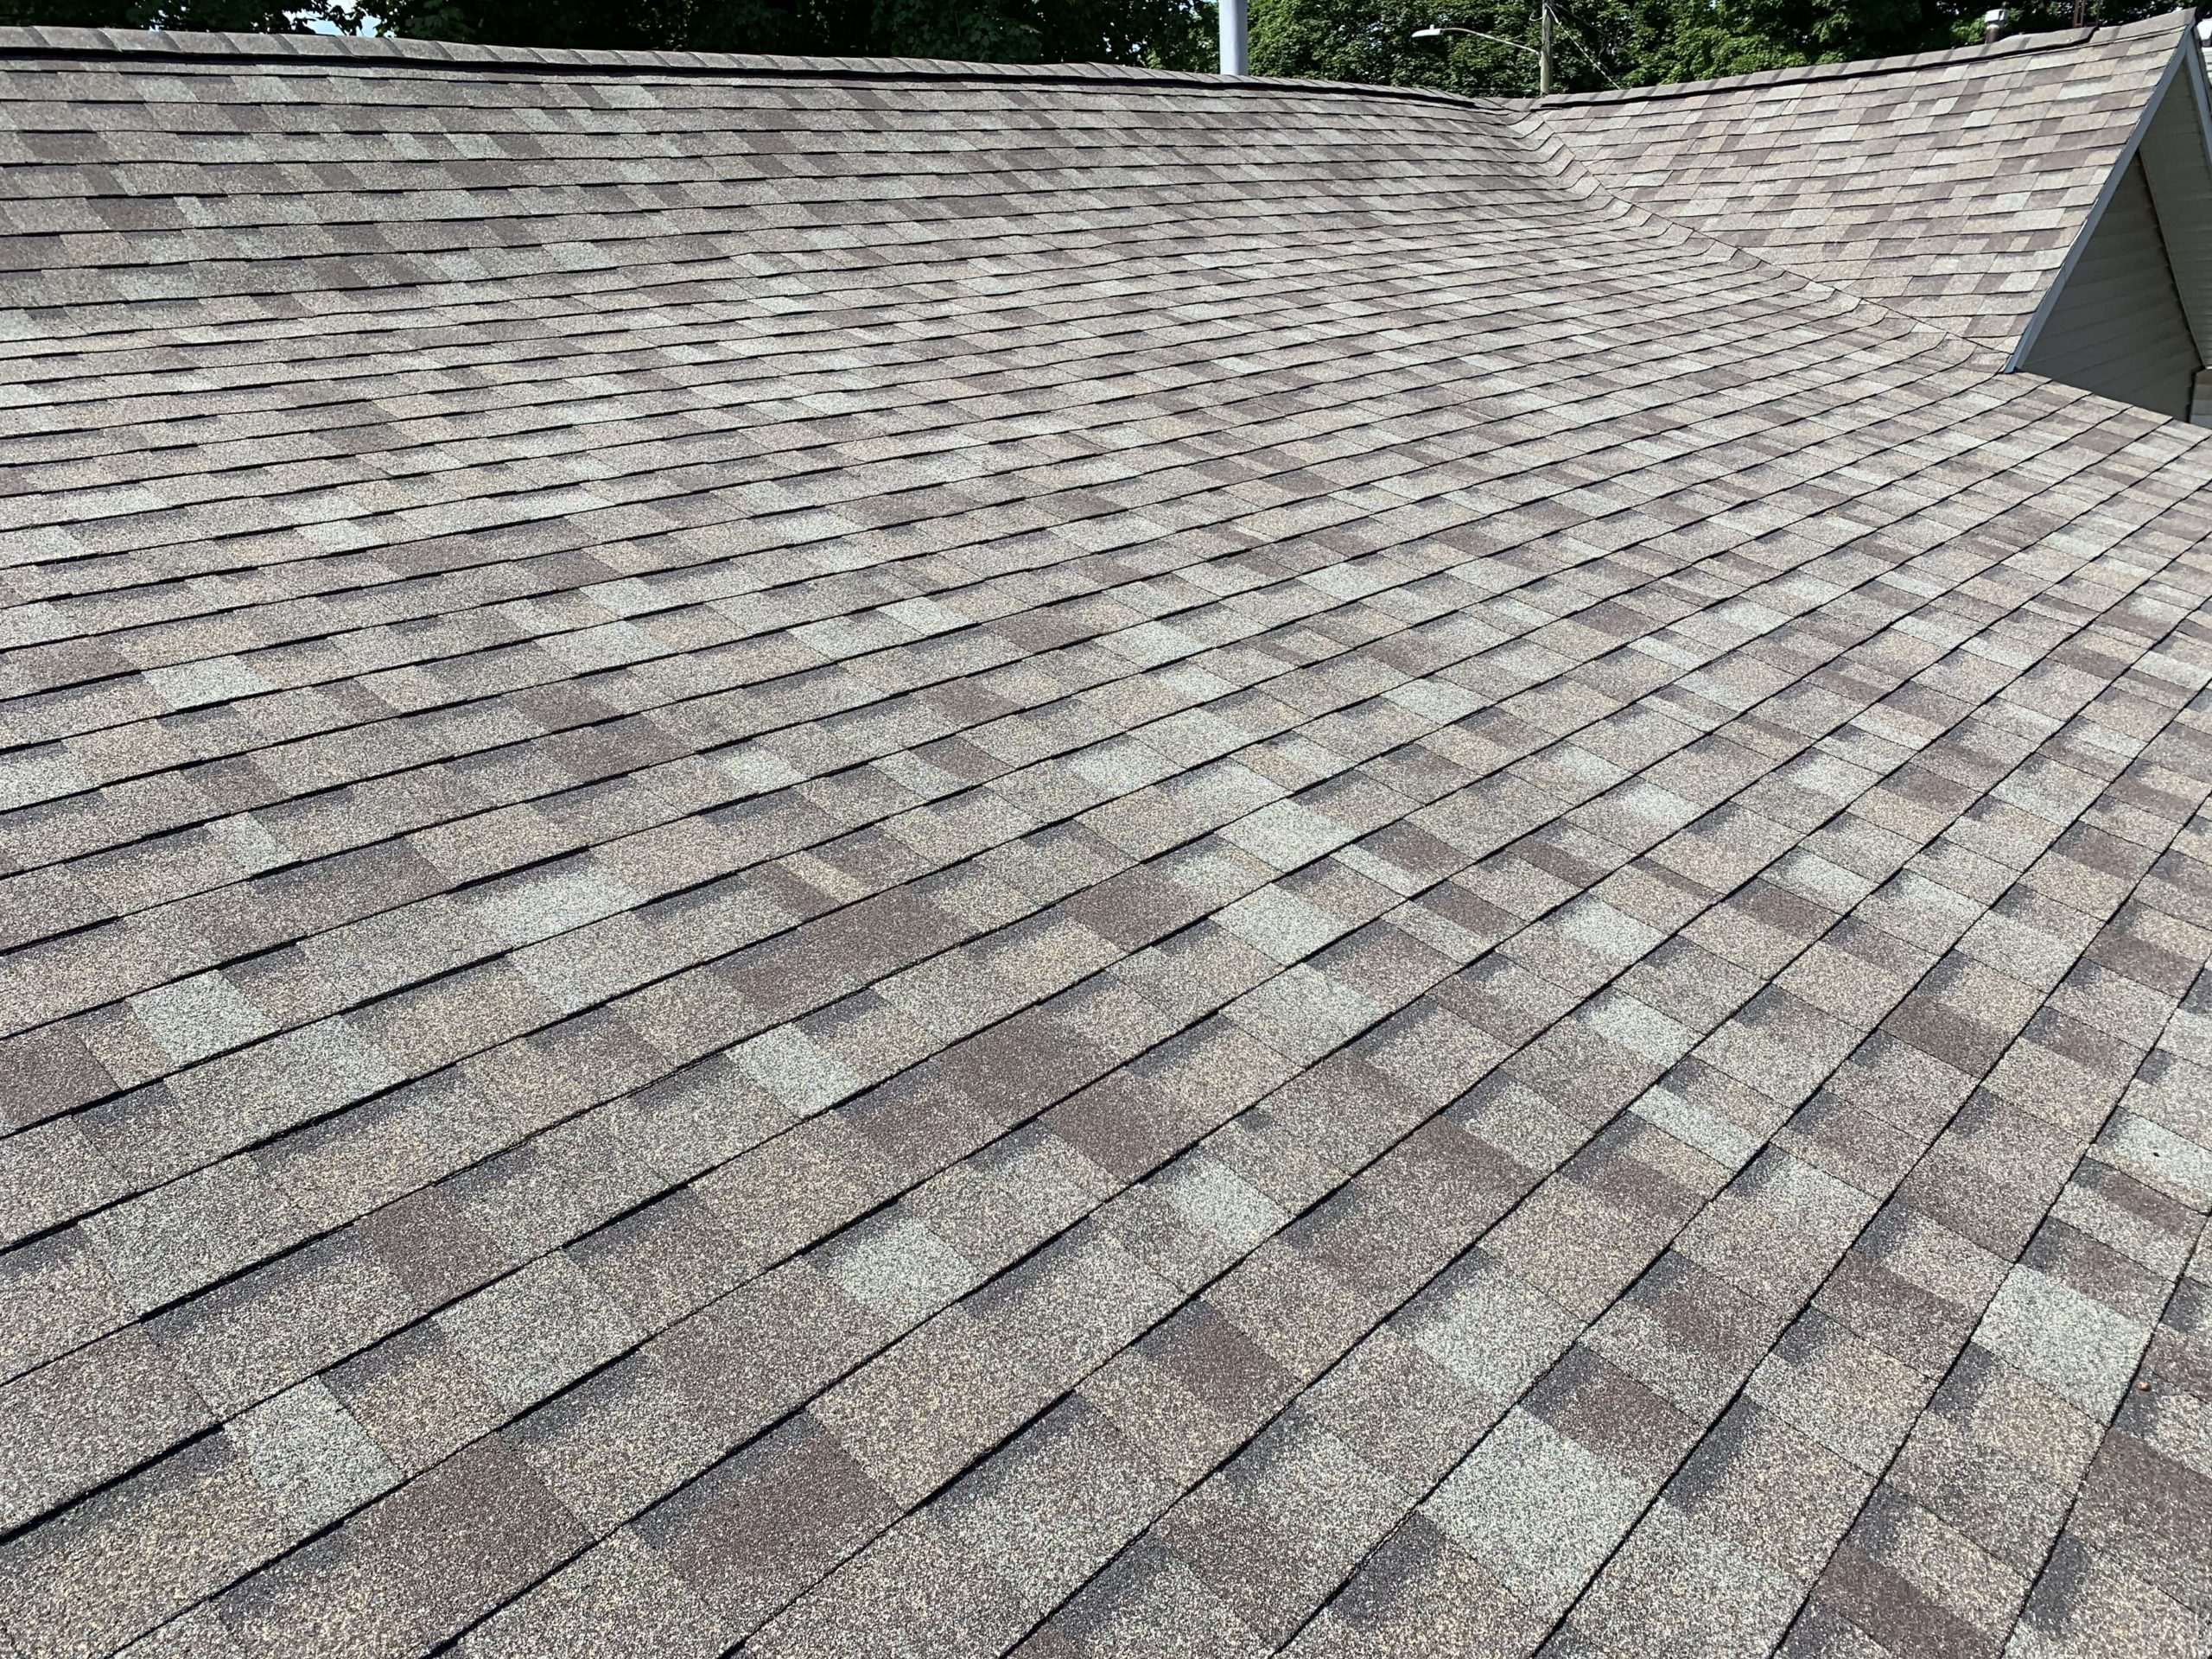 Owens Corning TruDefinition Duration Shingle Roof Replacement